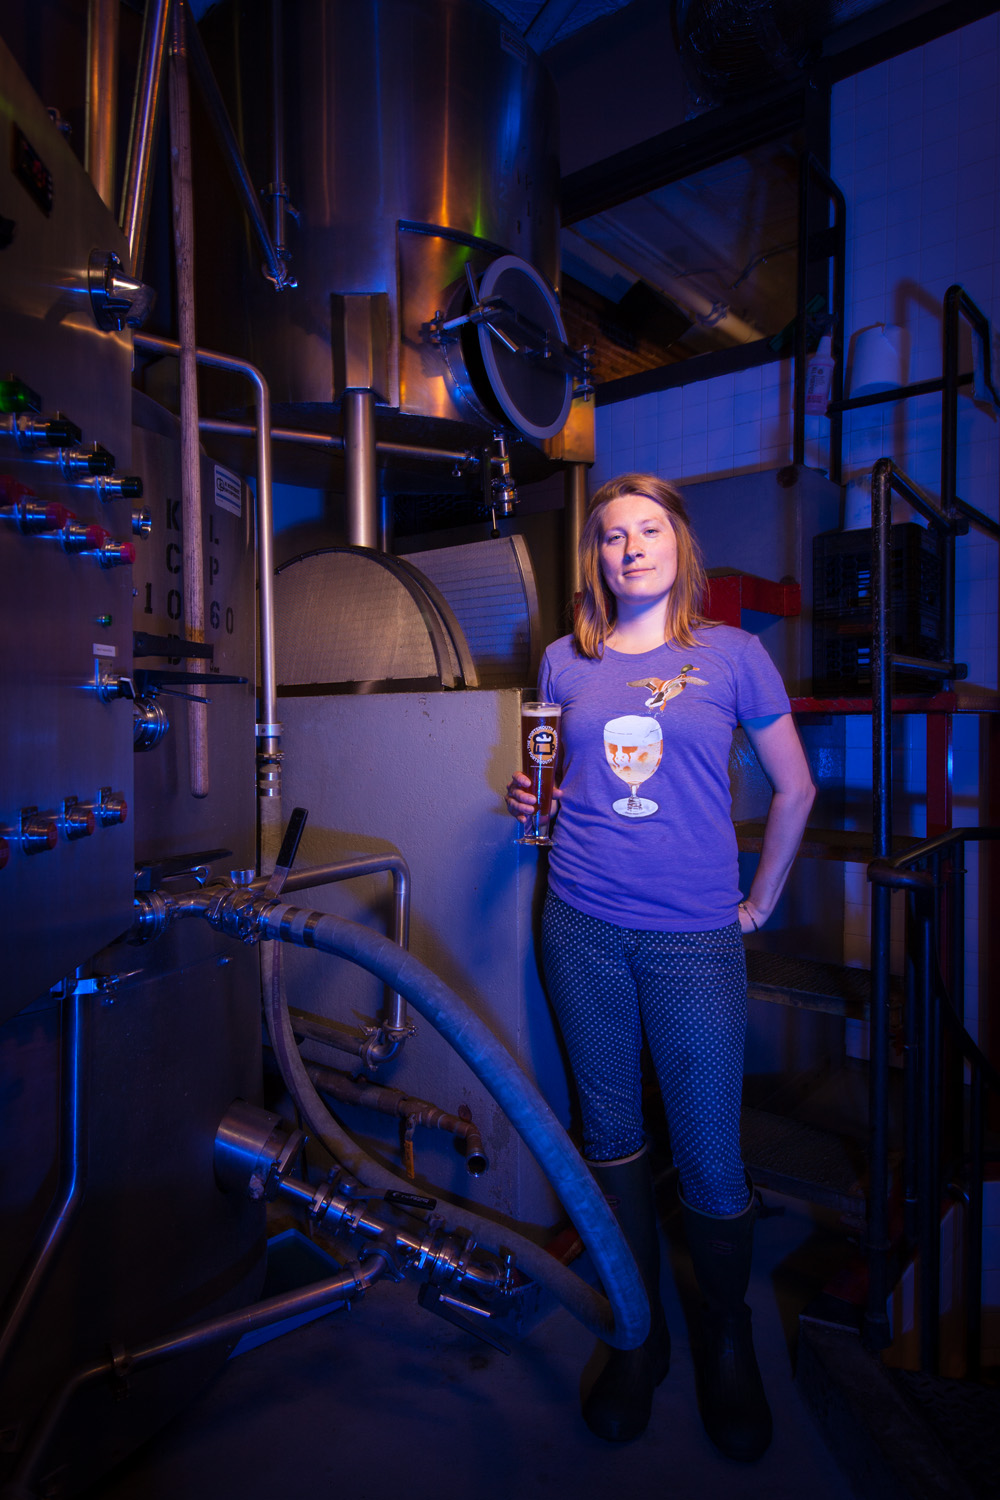 Maxine Munsey, Assistant Brewer Portsmouth Brewery Portsmouth, NH Established in 1991